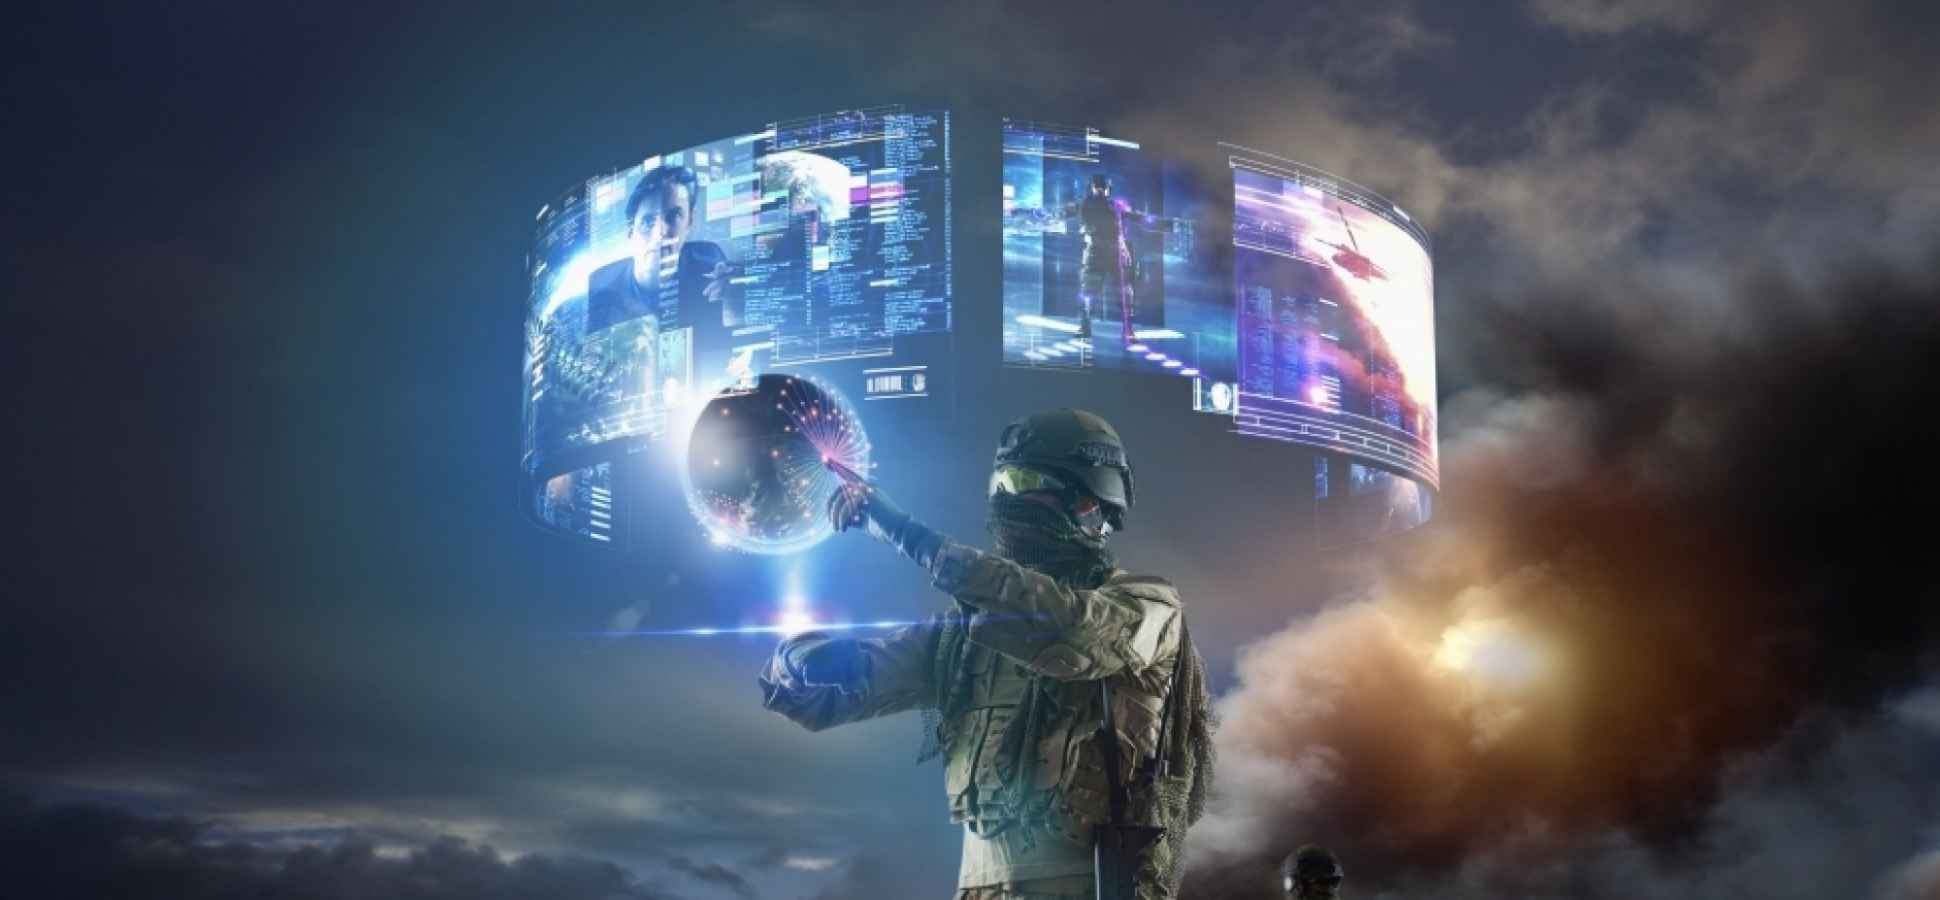 7 Mind-Blowing Ways Virtual Technology Will Change Your World